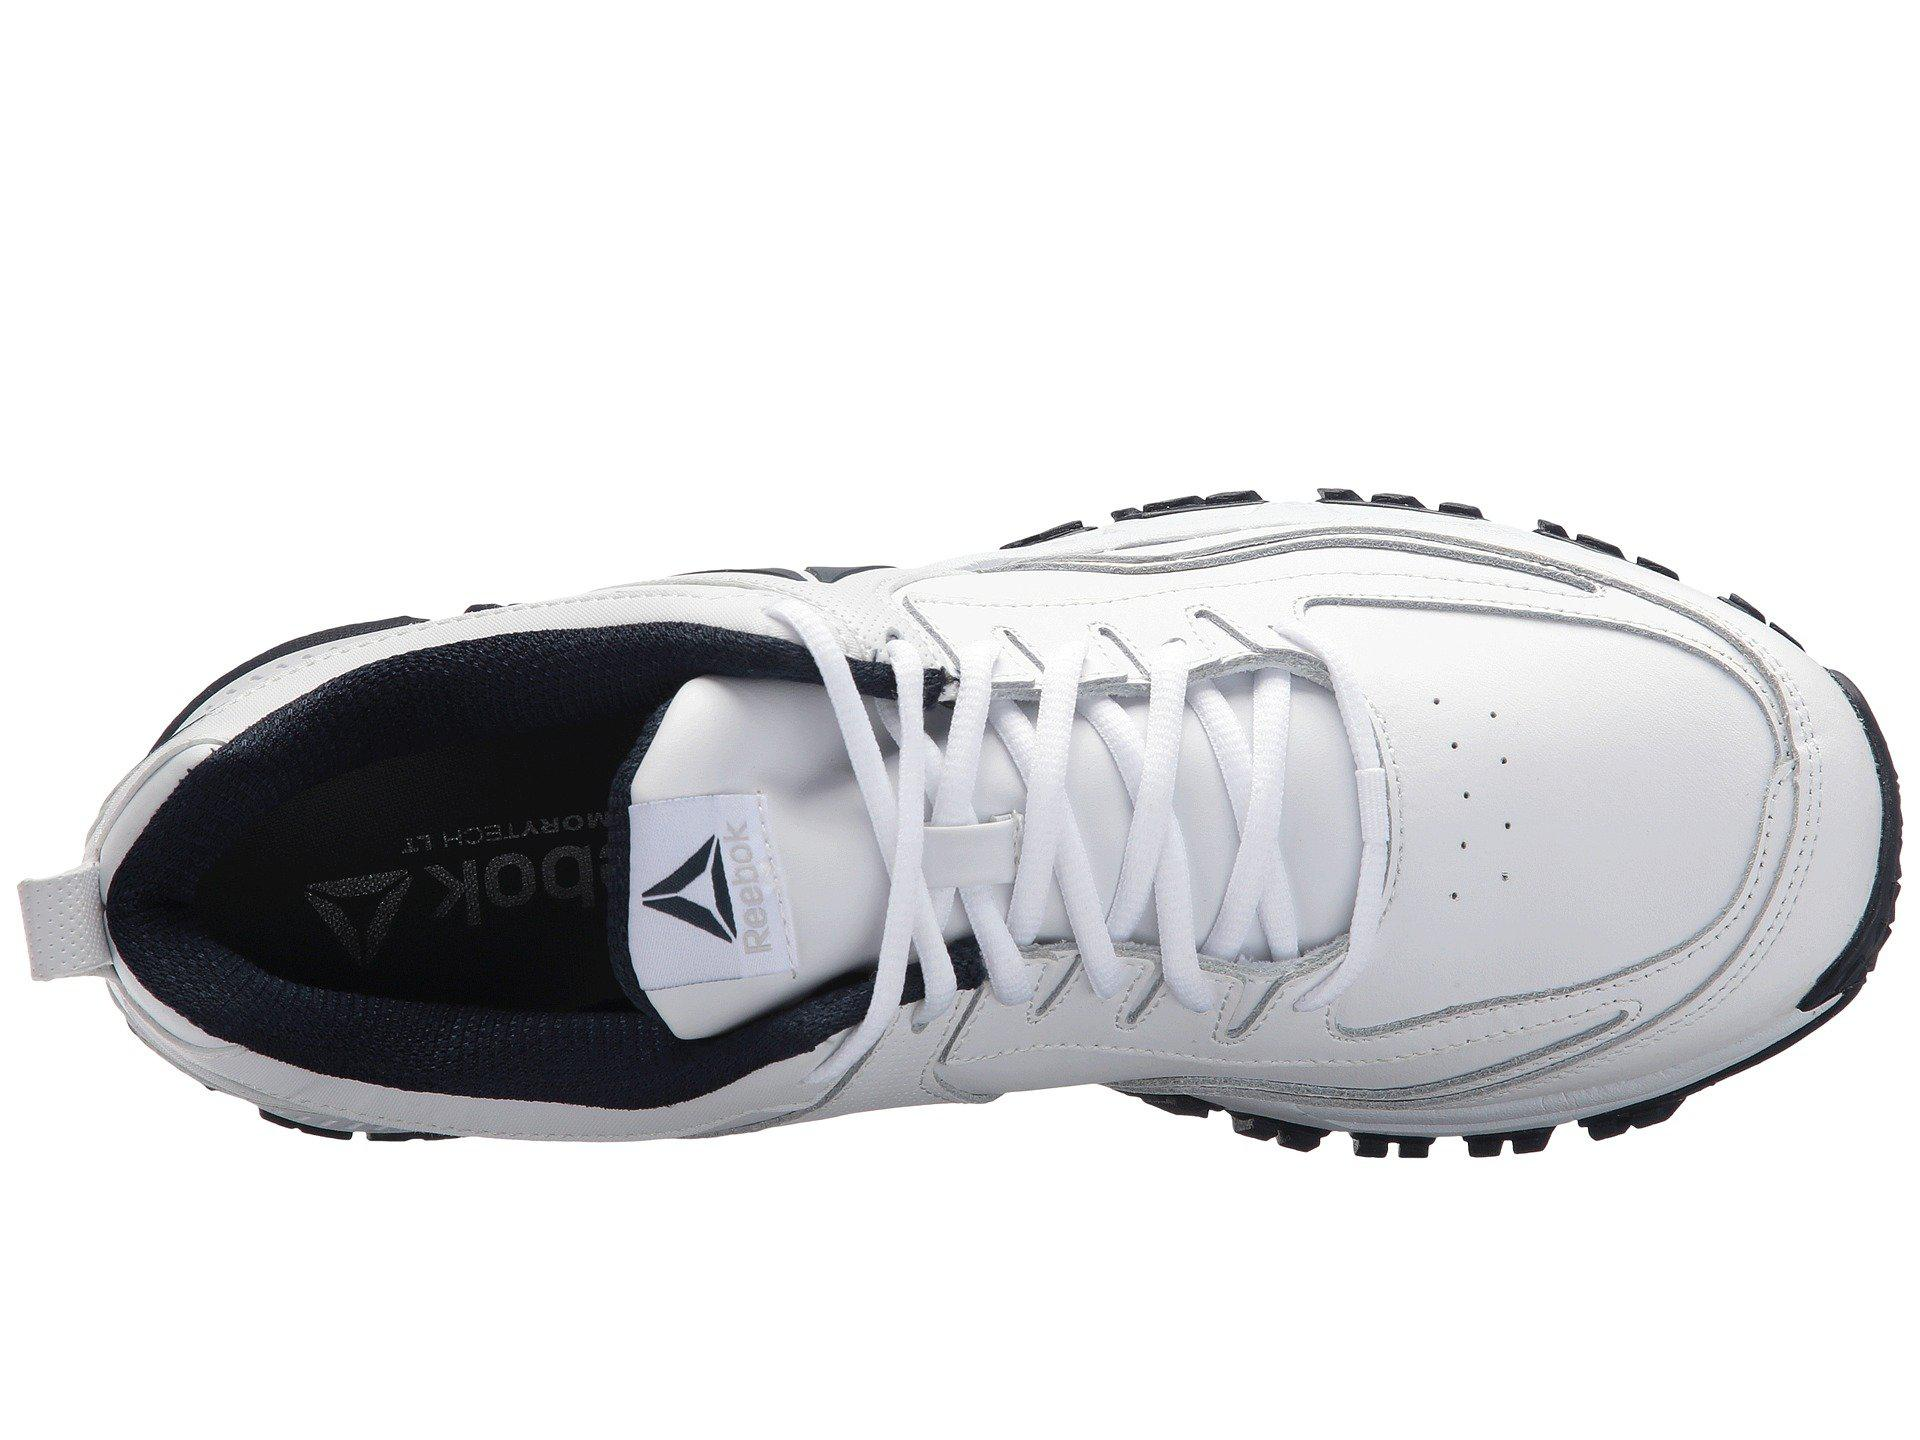 9f58d10f7b0 Reebok - White Ridgerider Leather for Men - Lyst. View fullscreen